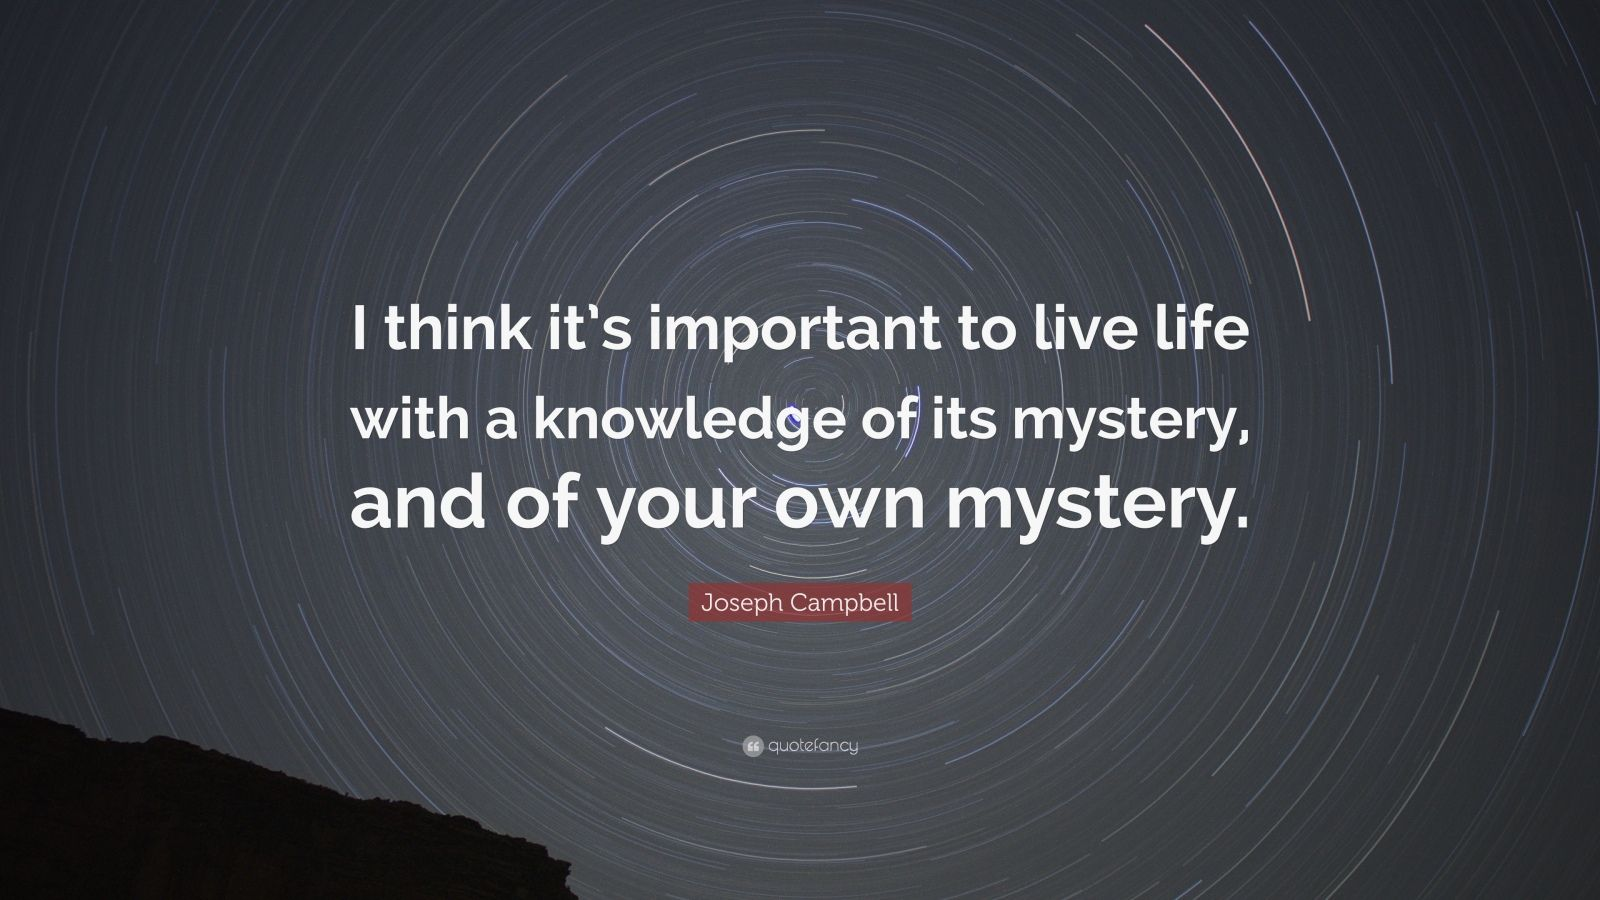 """Joseph Campbell Quote: """"I think it's important to live life with a knowledge of its mystery, and of your own mystery."""""""